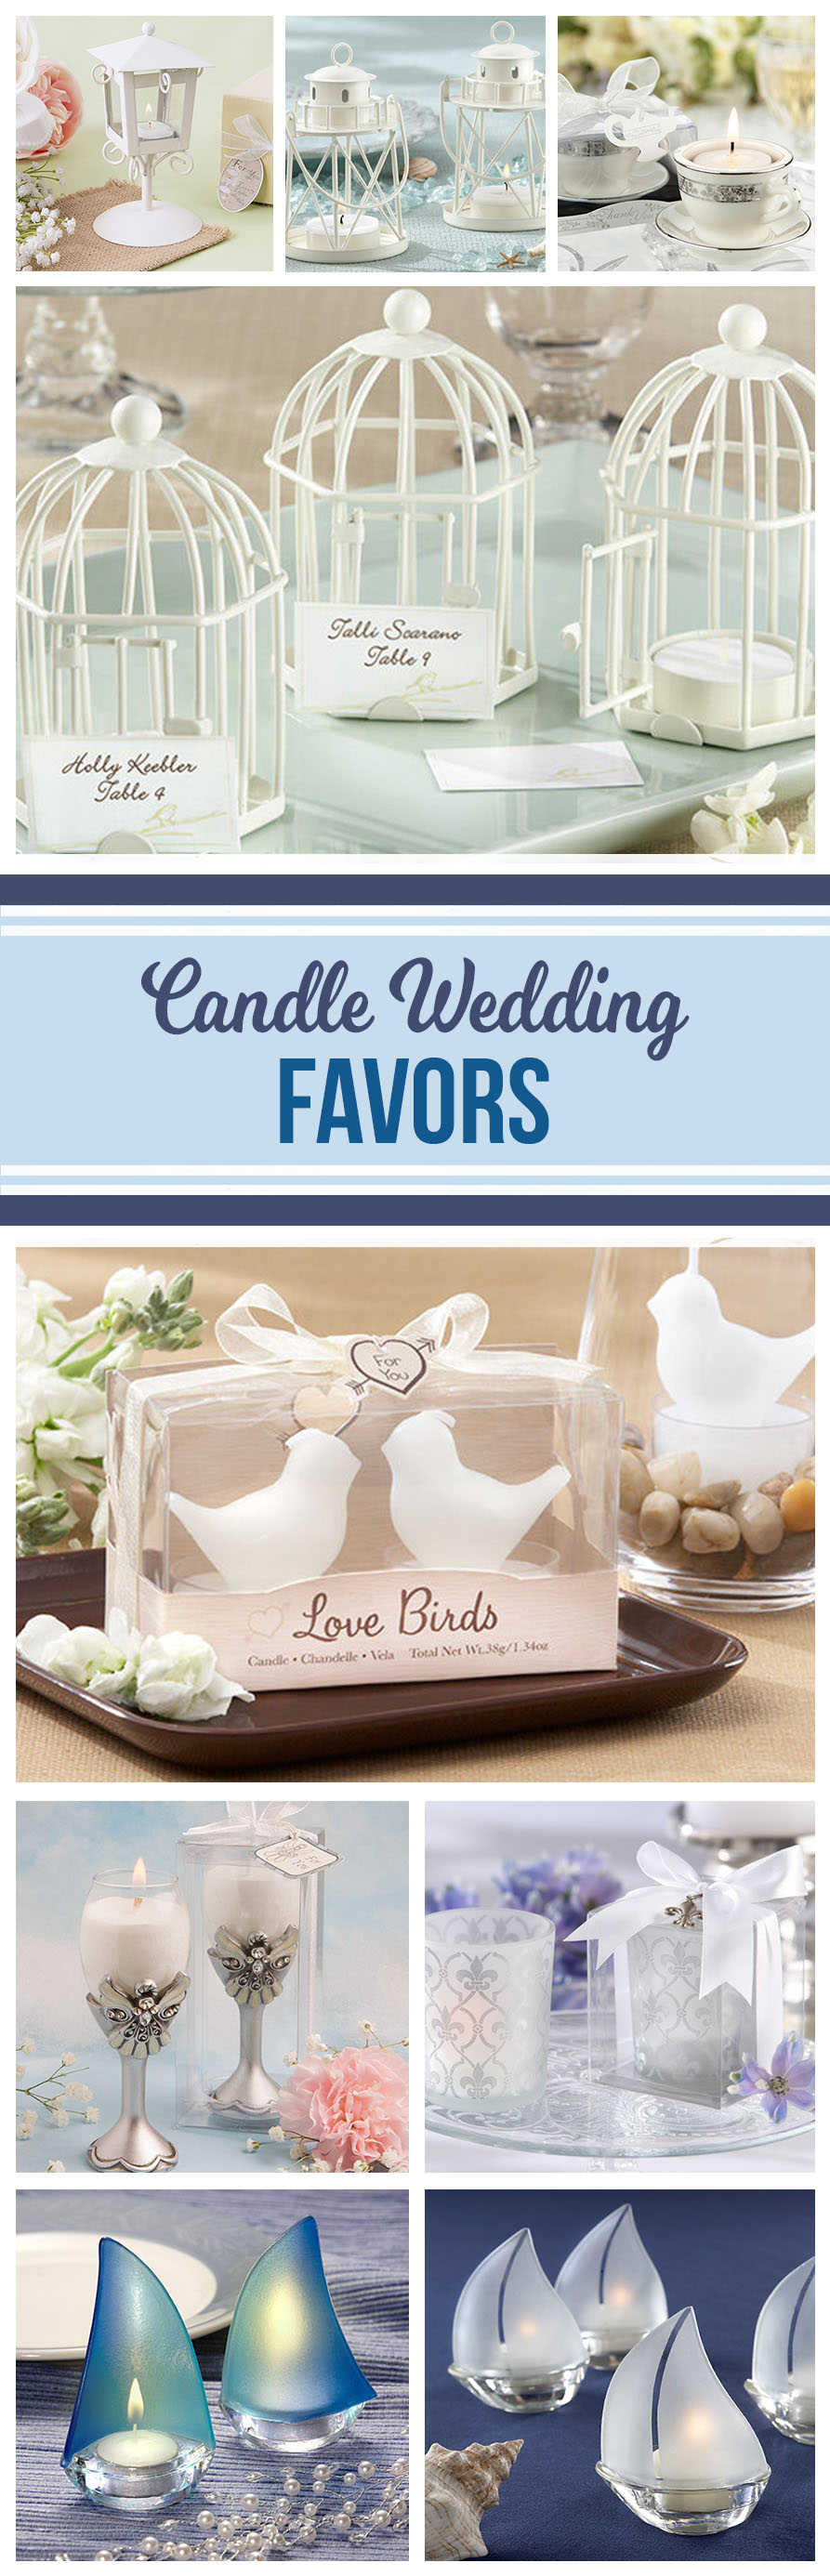 So many creative ways to decorate a table or give unique (and useful) wedding favors or bridal shower favors